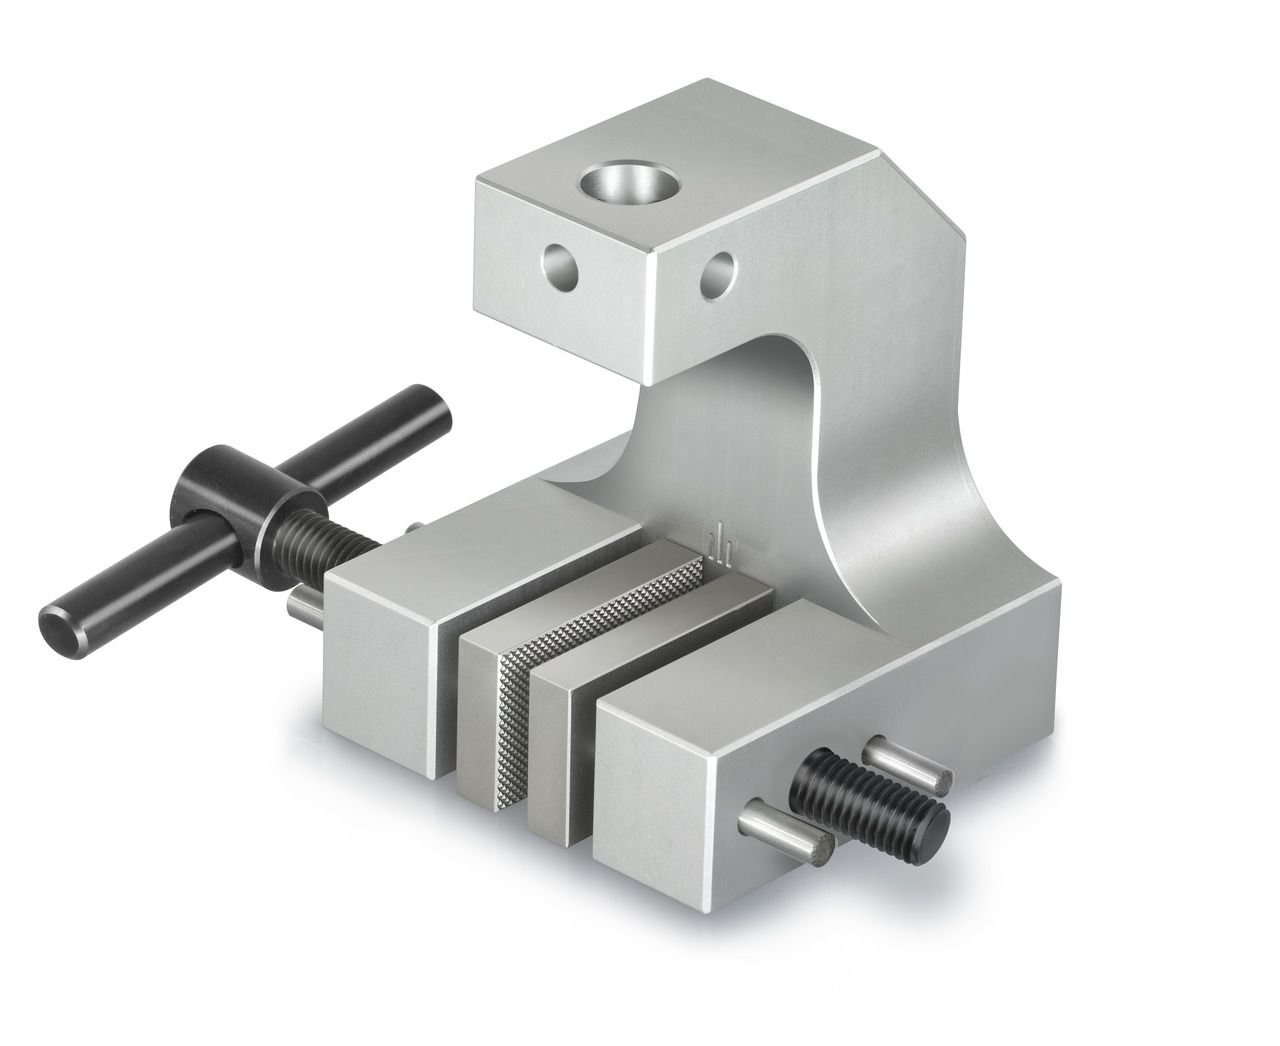 AD 9070 Screw In Tension Clamp